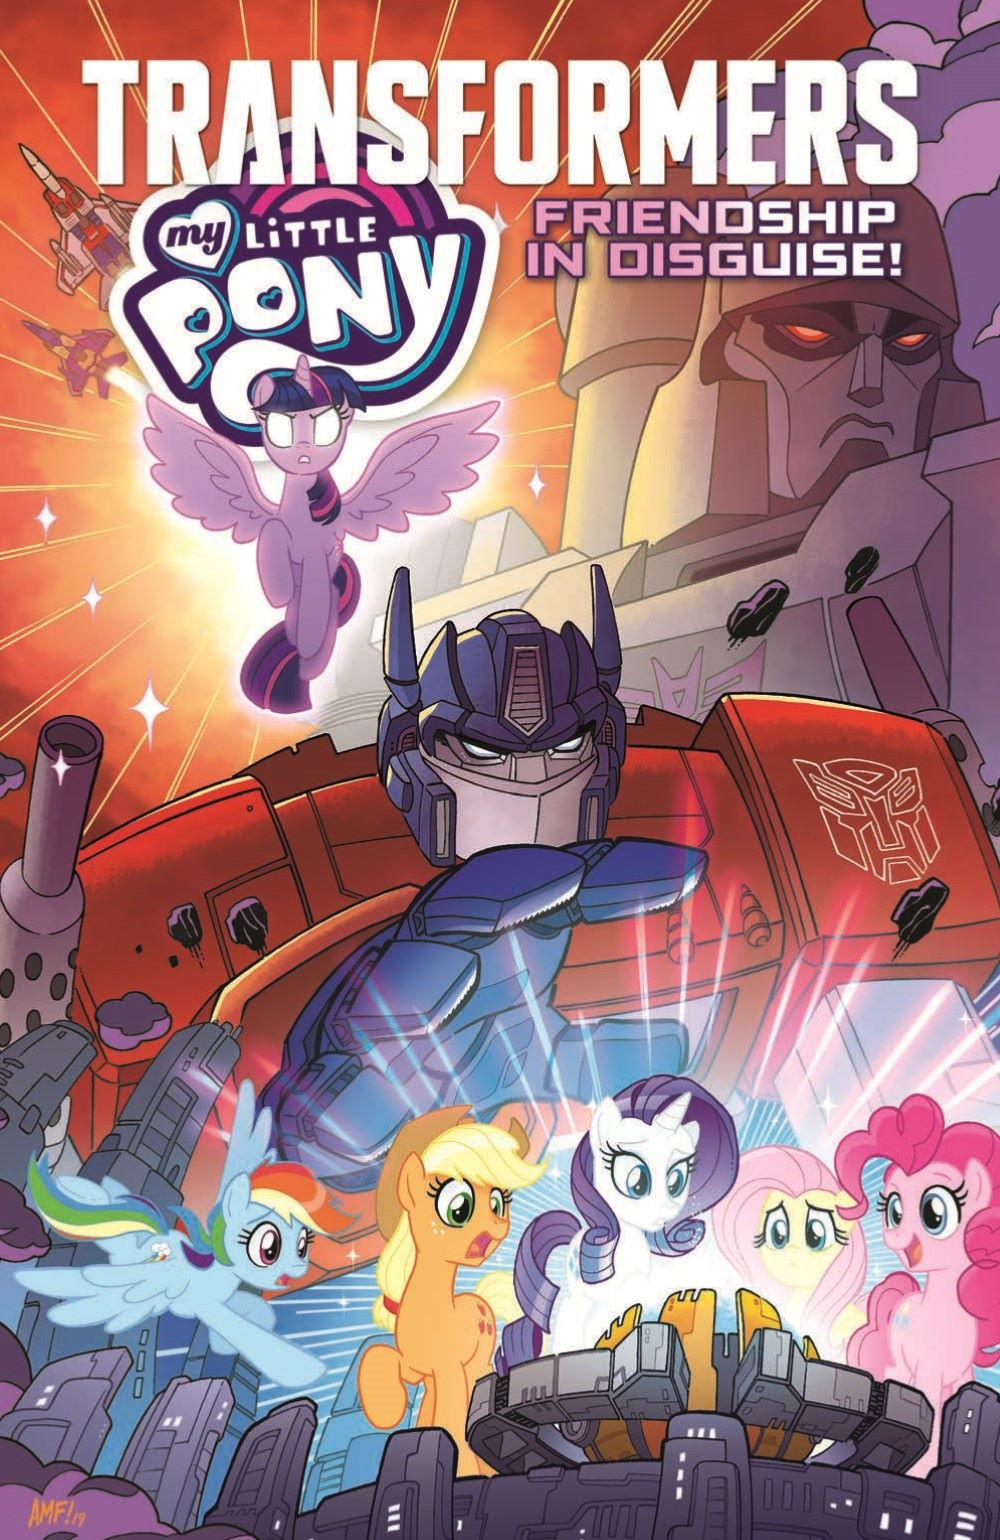 MLP-TF_XOVER_TPB_pr-1 ComicList Previews: MY LITTLE PONY TRANSFORMERS FRIENDSHIP IN DISGUISE TP